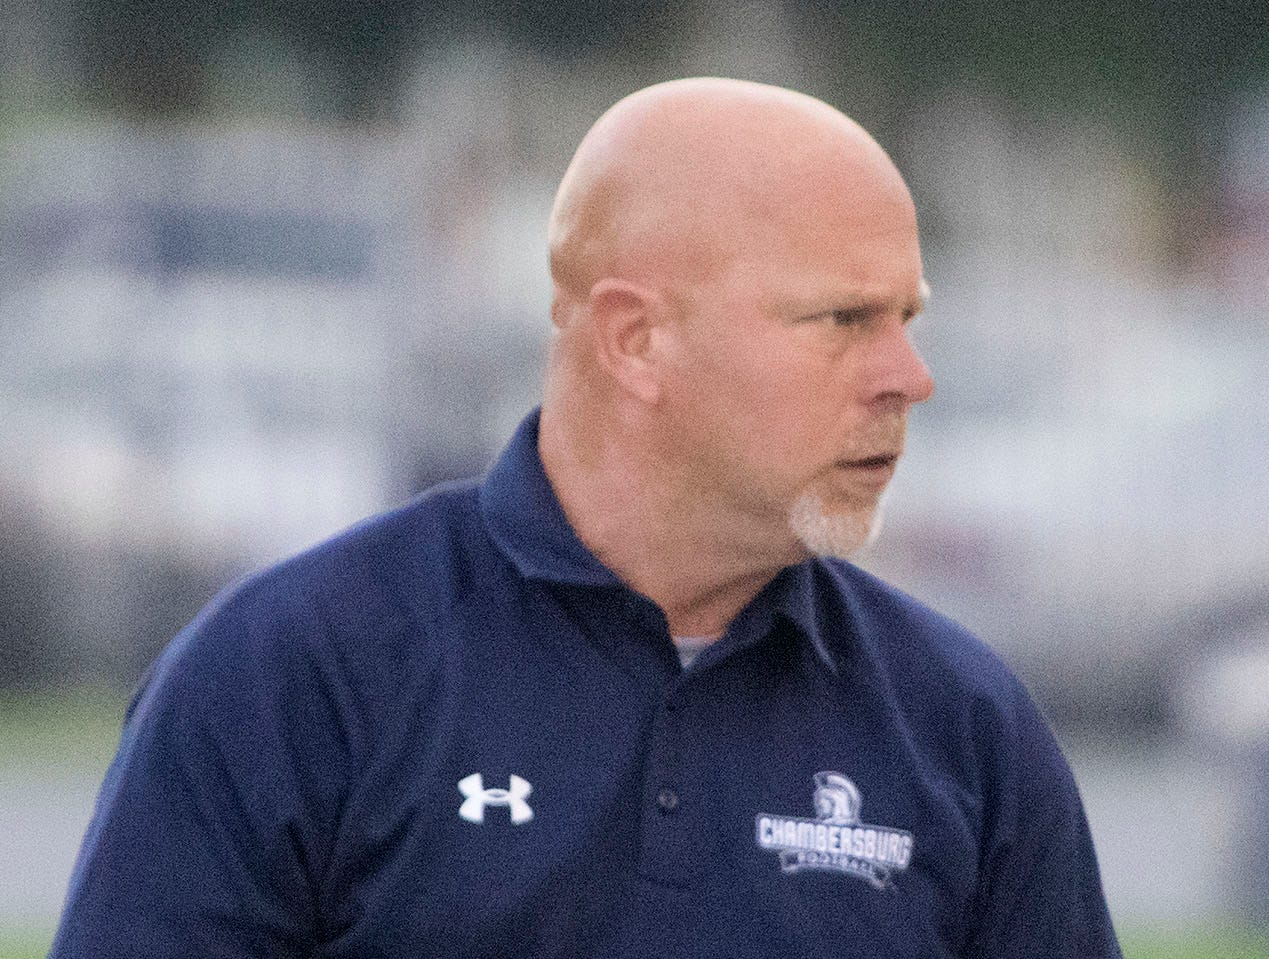 Mark Luther coaches the Chambersburg Trojans. Chambersburg routed South Western 51-26 in football on Friday, Aug. 31, 2018.